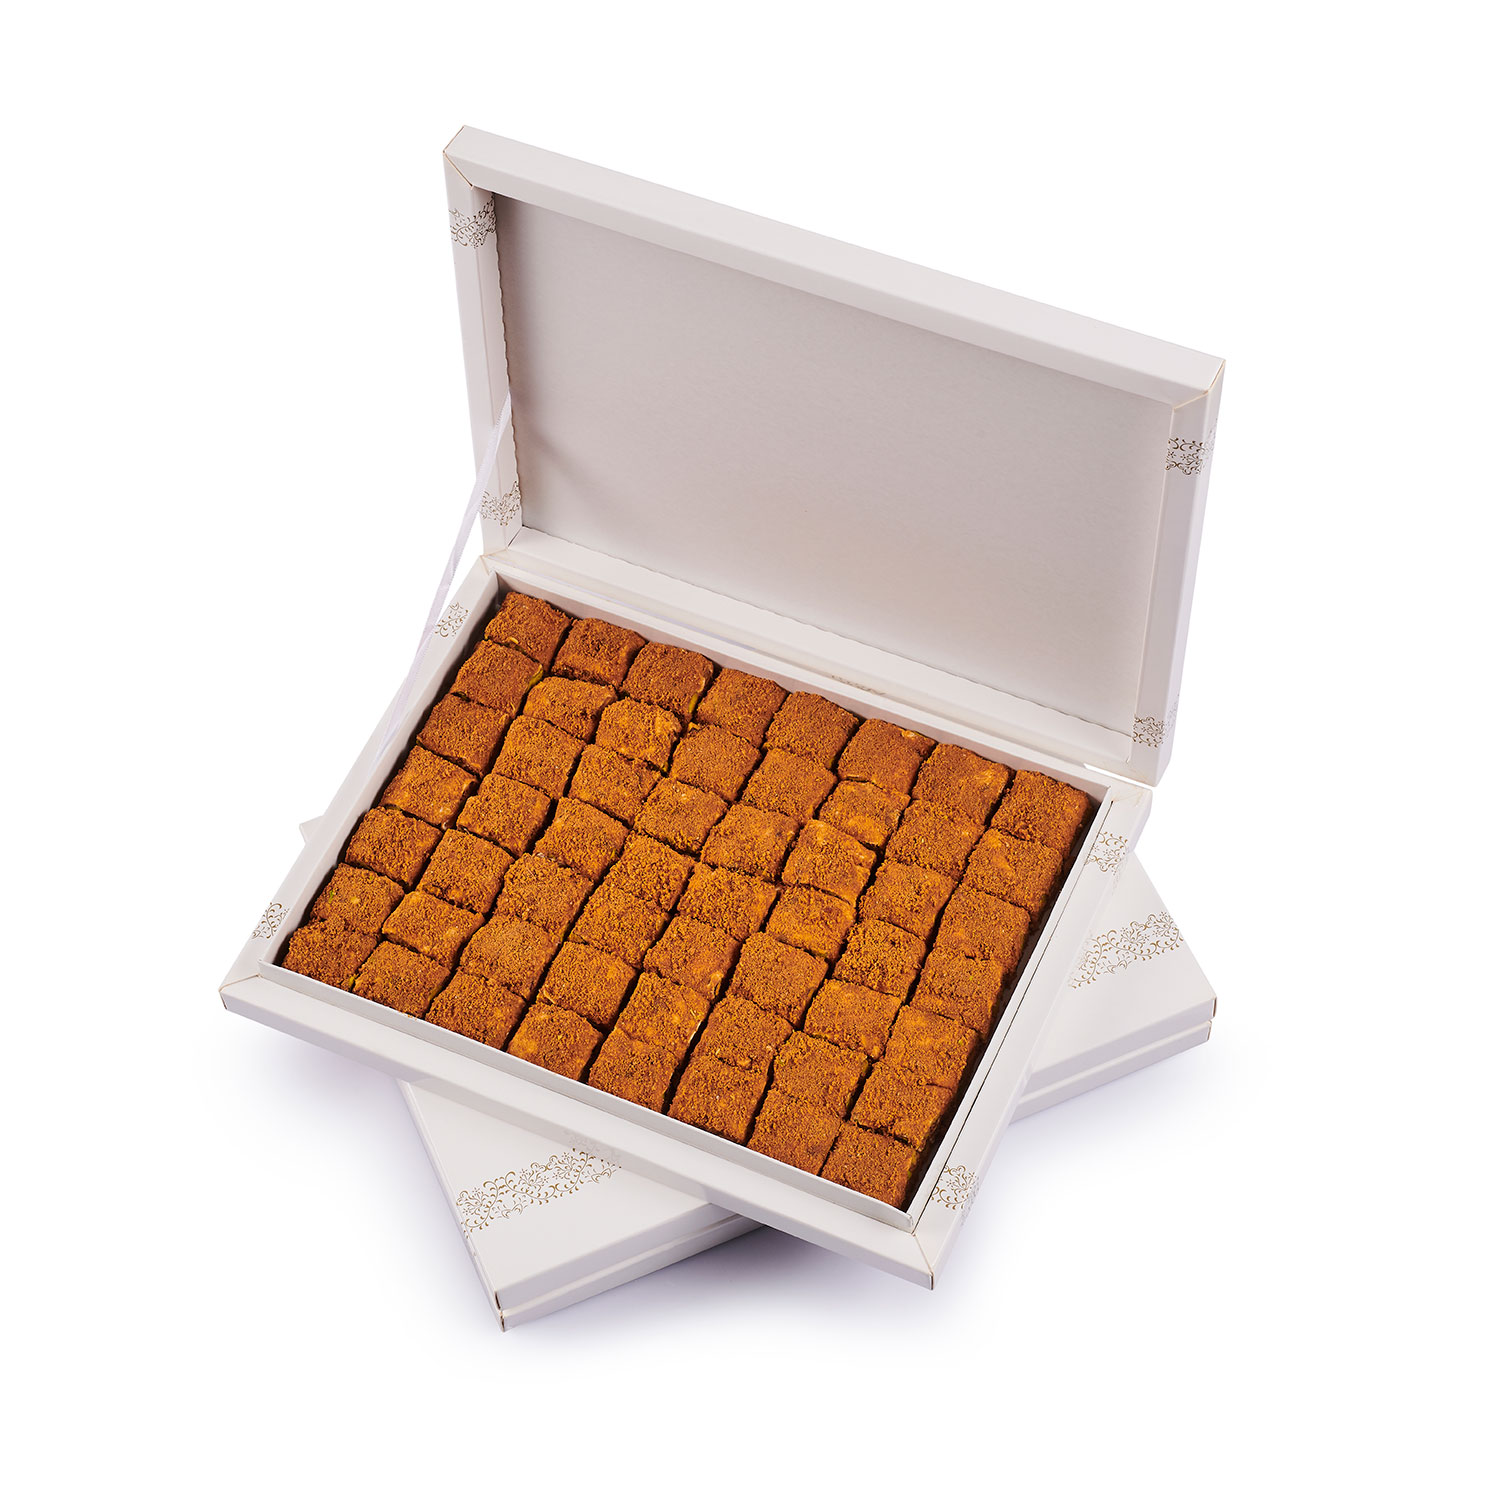 Turkish delight with Lotus biscuits